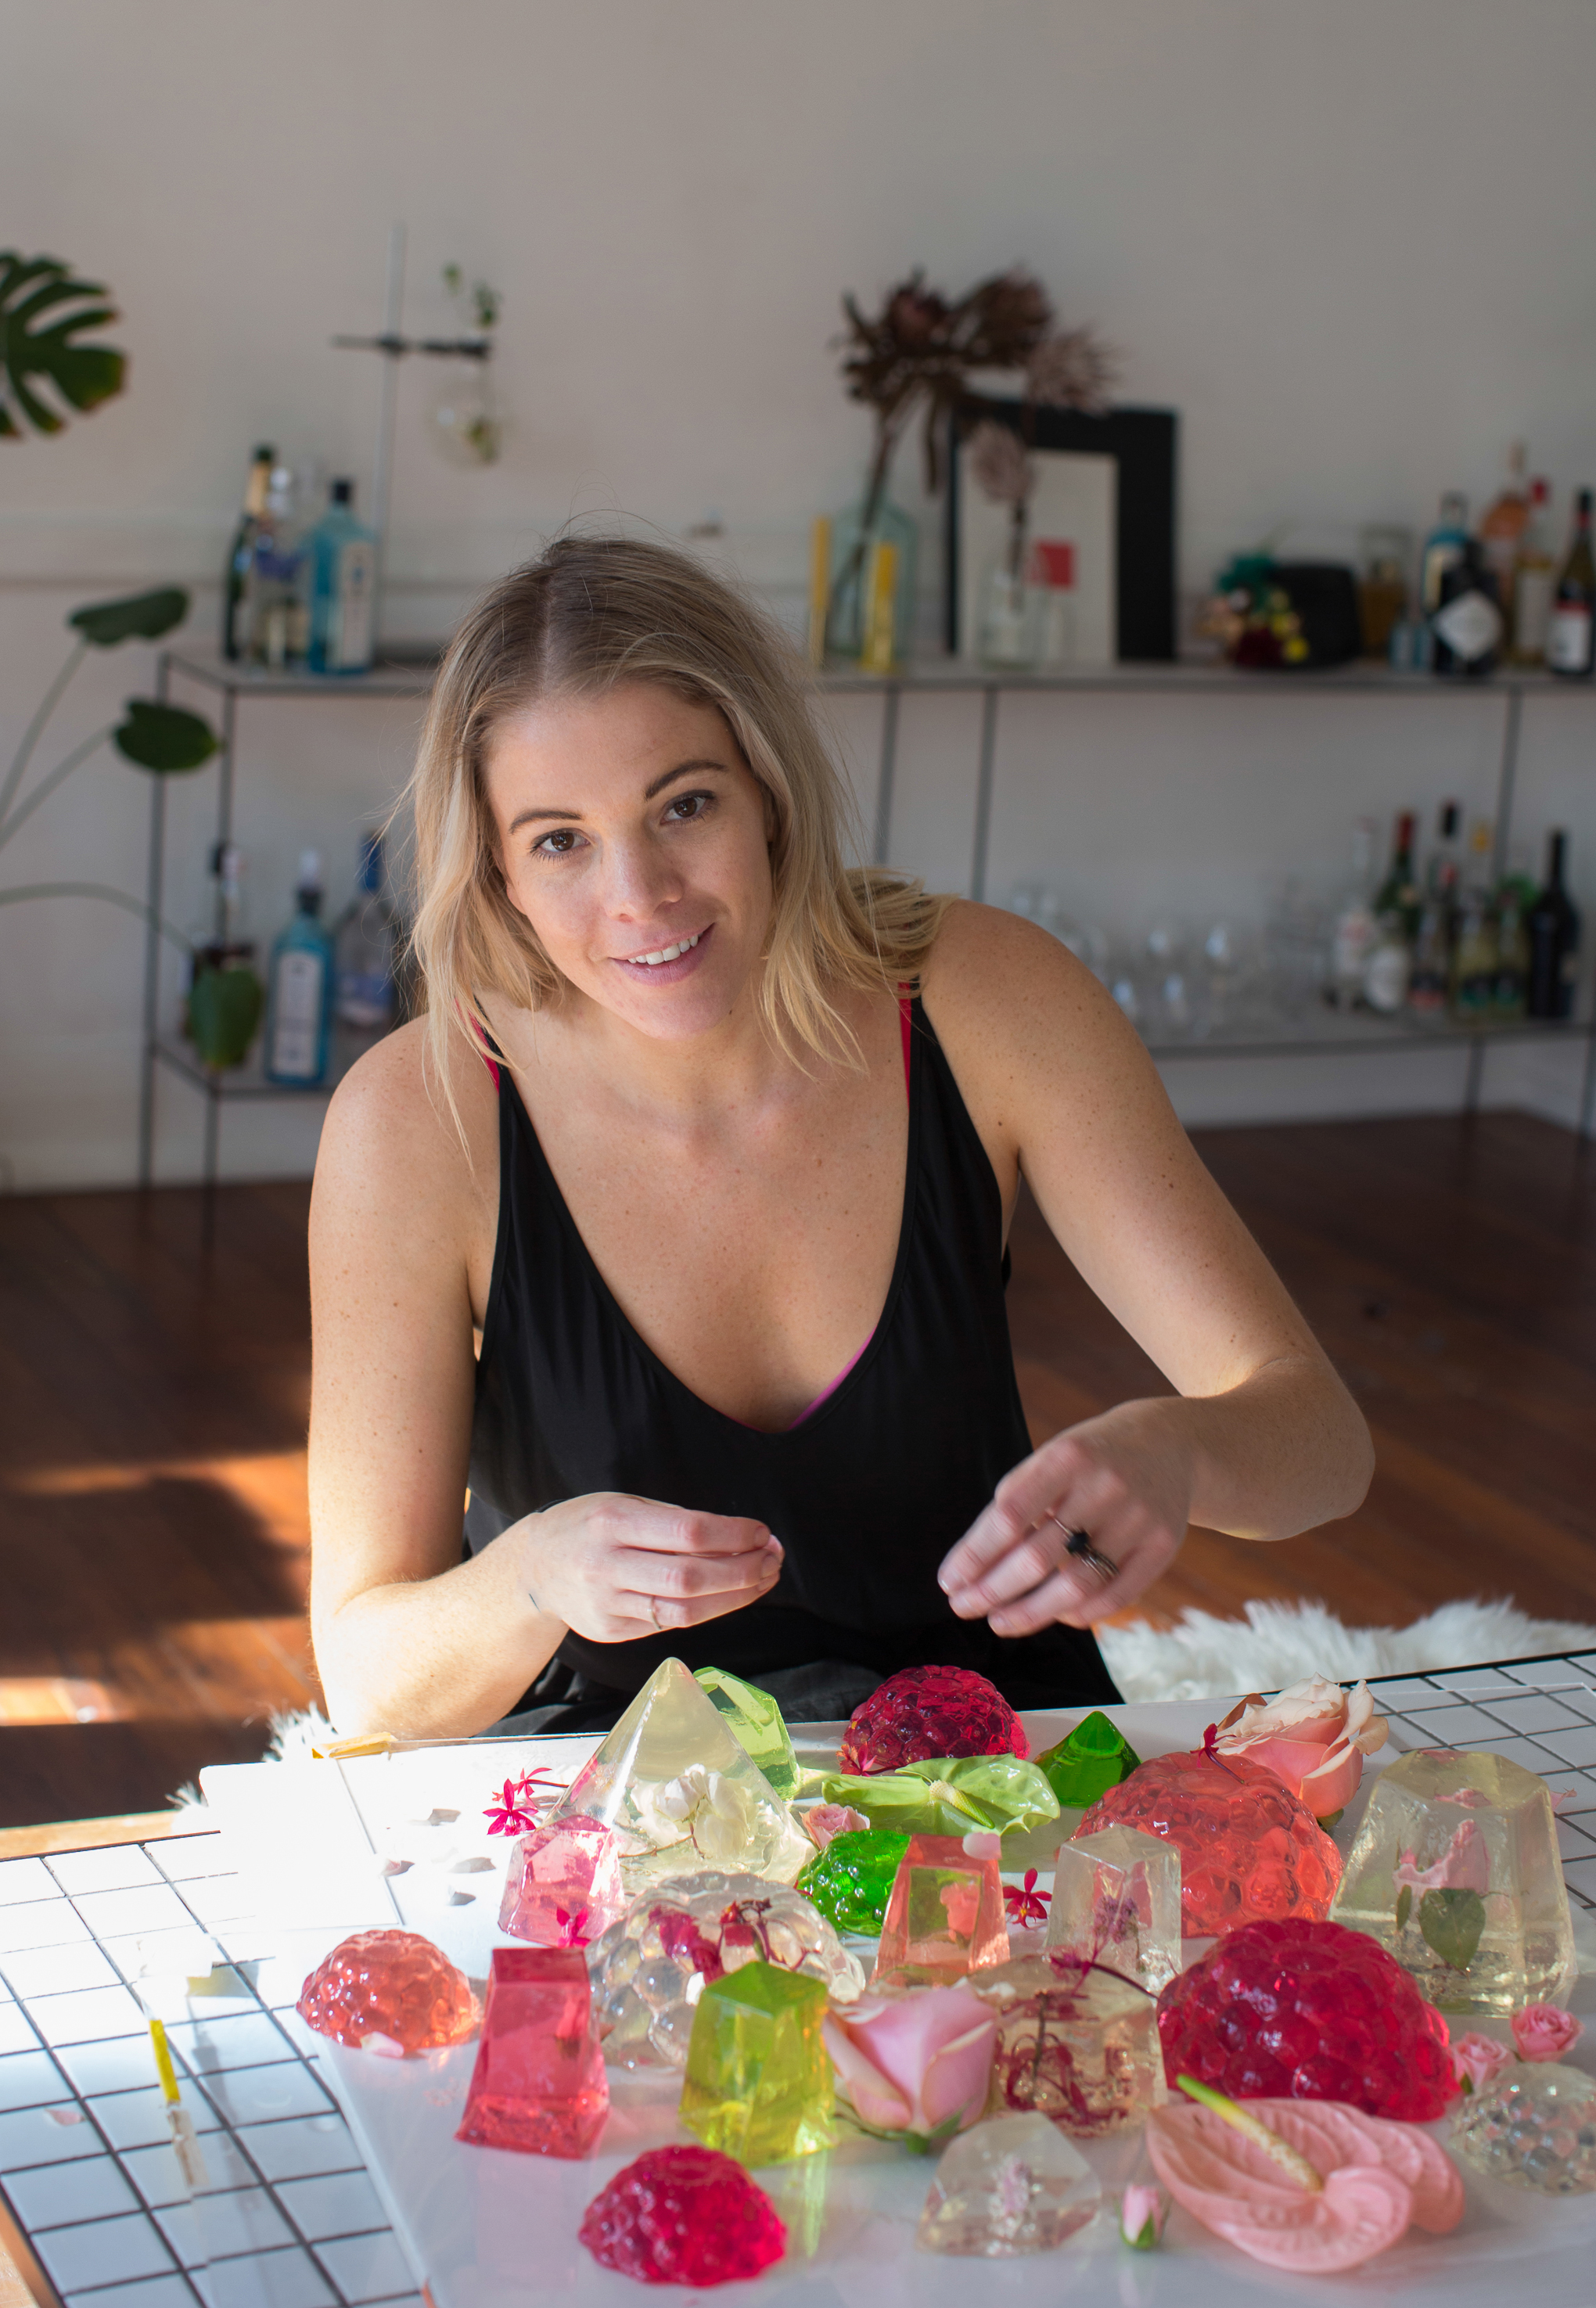 Categories: Food + Drink-Jessica Mentis - Issue 9